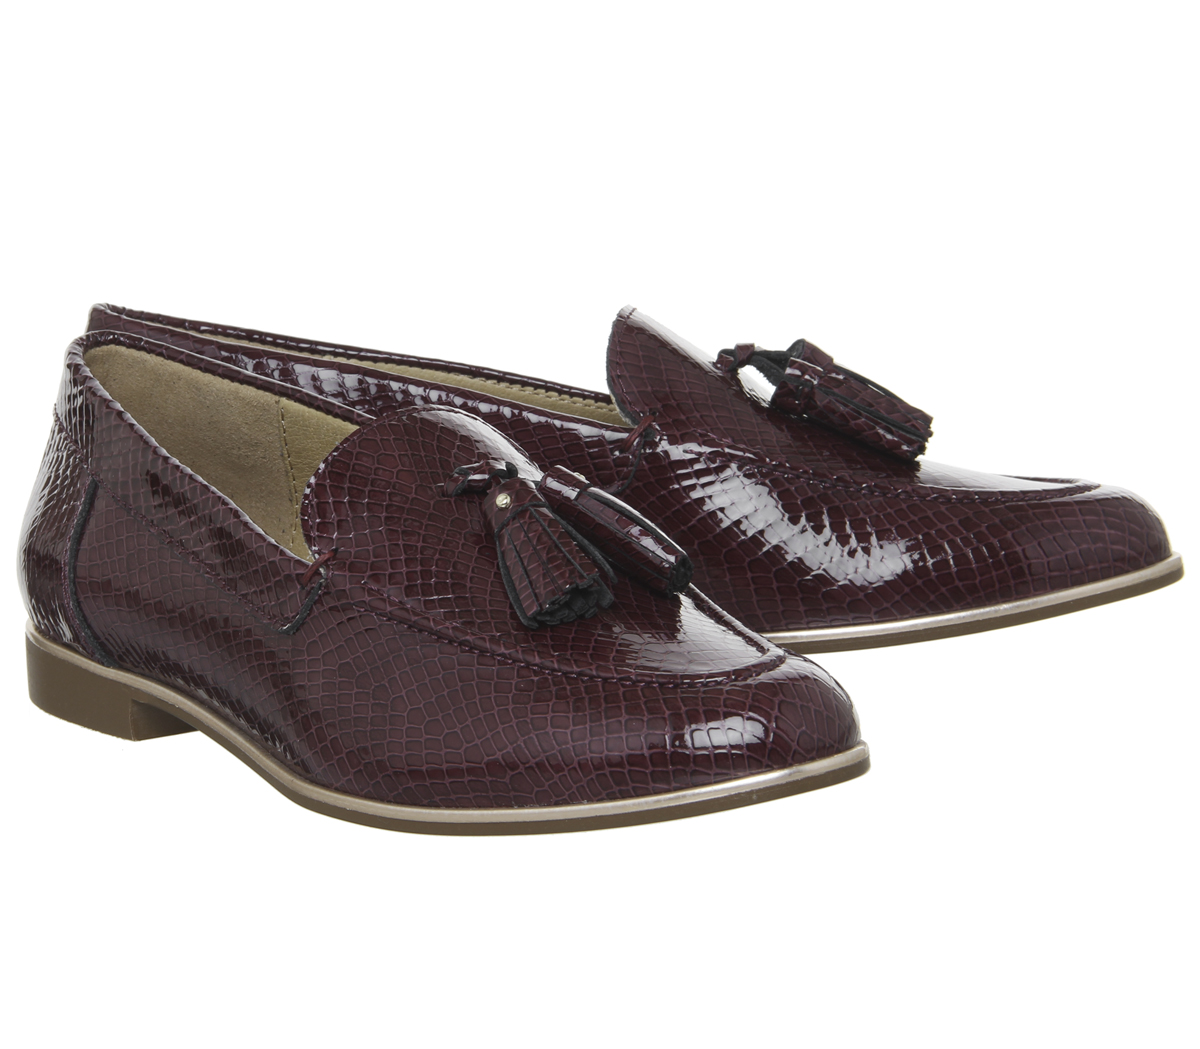 Womens Office Retro Tassel Loafers Burgundy Snake Leather With Rose Gold Rand Fl